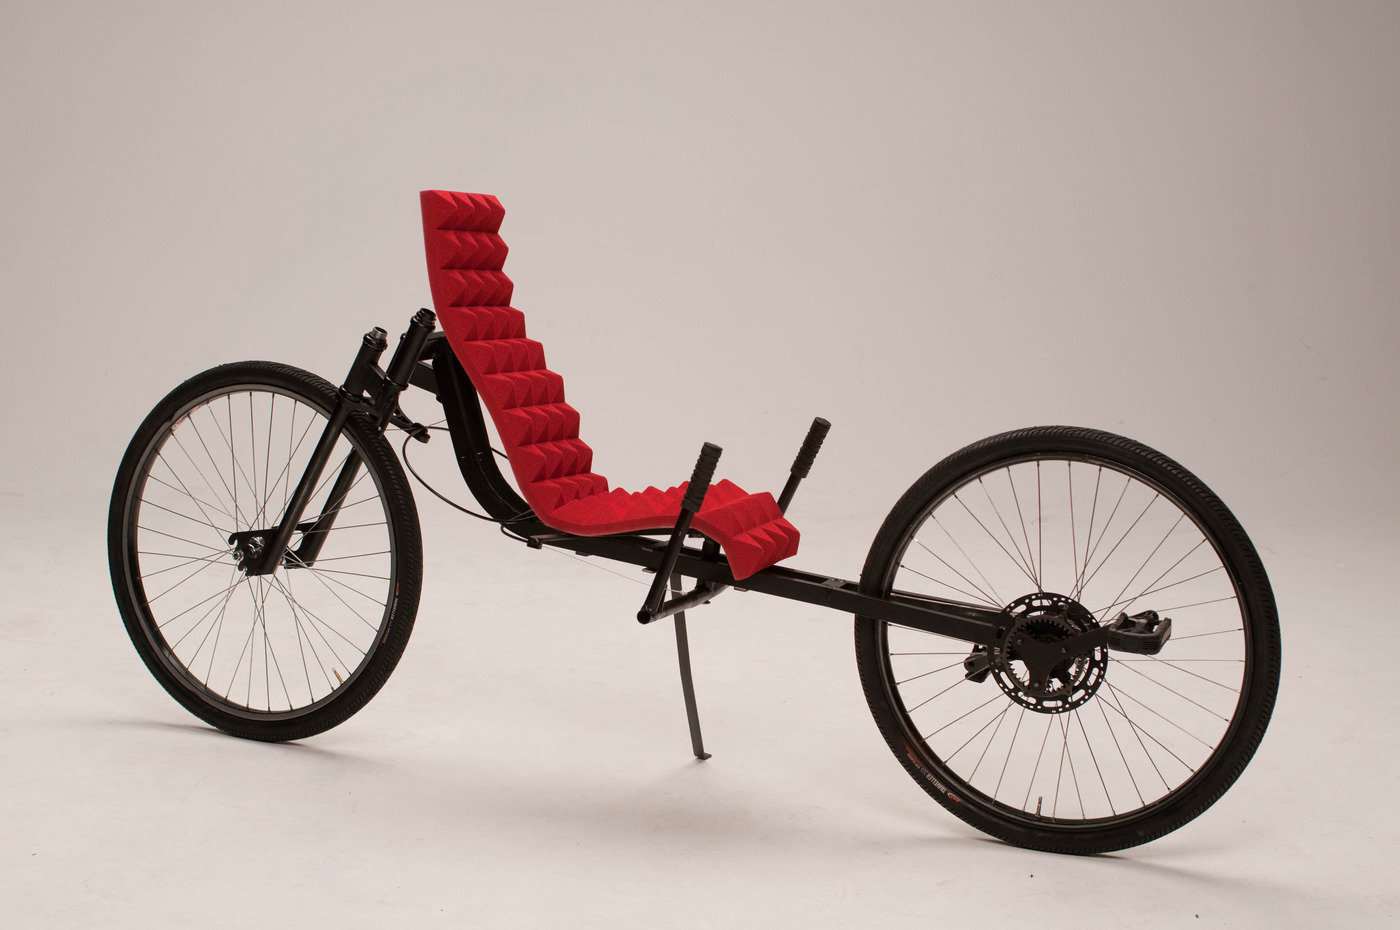 Rws Recumbent Bike By Mohsen Saleh At Coroflot Com